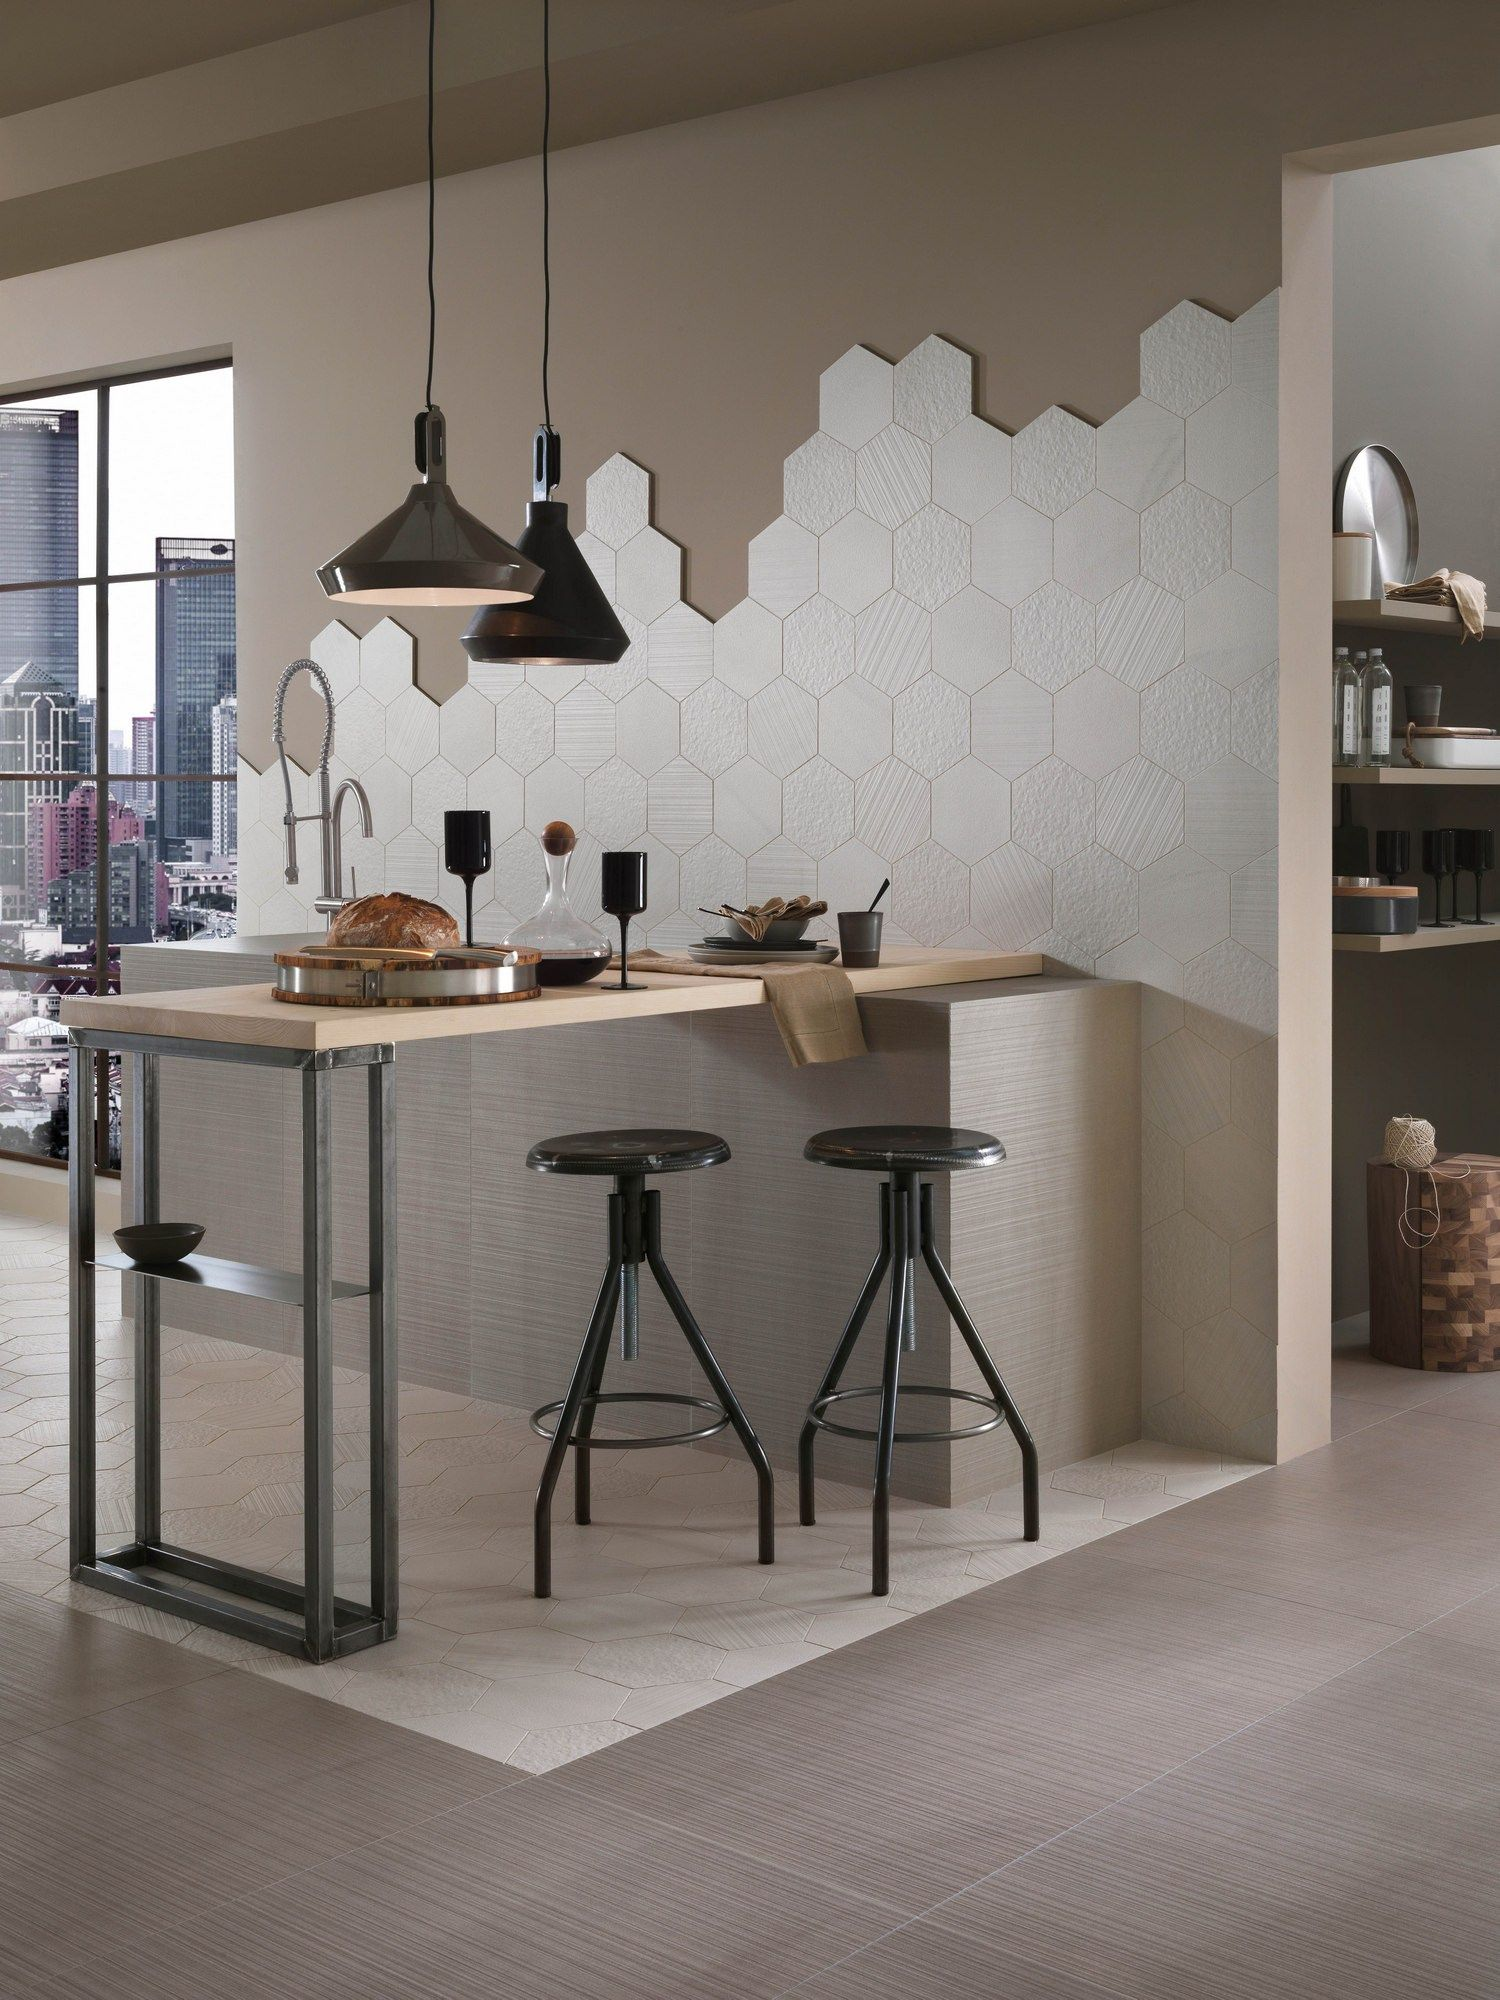 Full body porcelain stoneware wall tiles with stone effect SANDS EXPERIENCE White Sand Experience Collection By Italgraniti